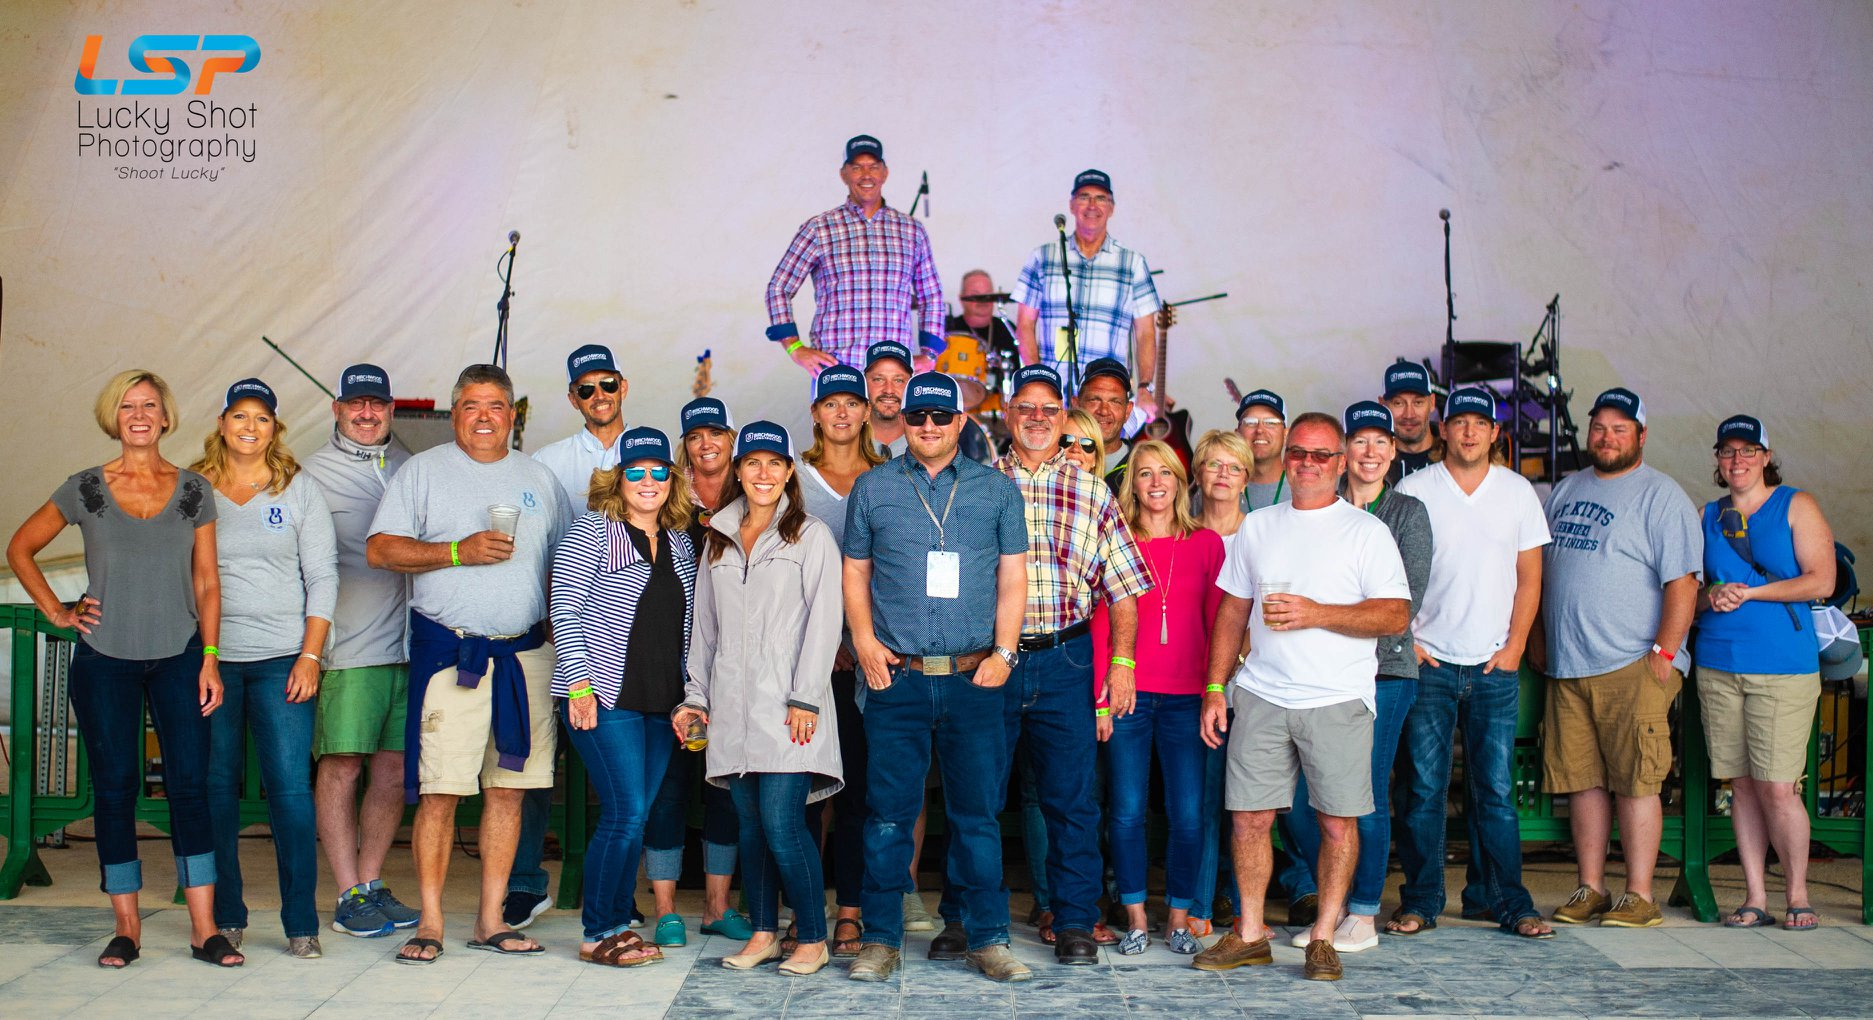 The Birchwood Construction Family enjoys their time at Petoskey Festival on the Bay's Country Night with Ryan Peters Music.